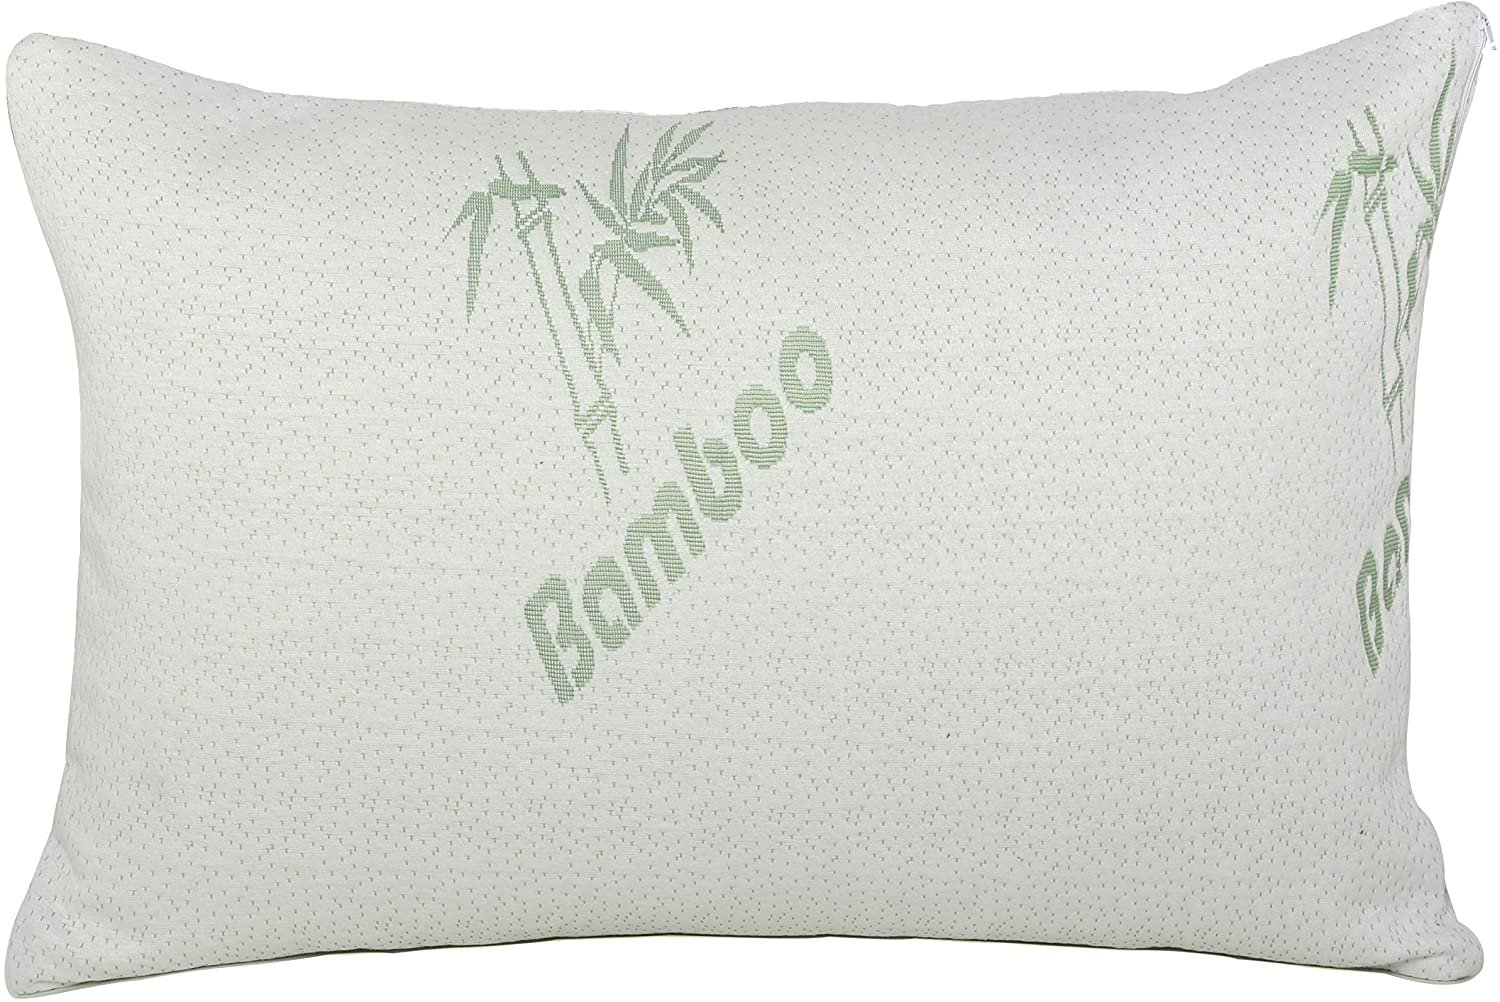 sapphire home shredded bamboo memory foam bed pillow hypoallergenic removable cover with zipper soft keep cool bamboo foam side back stomach